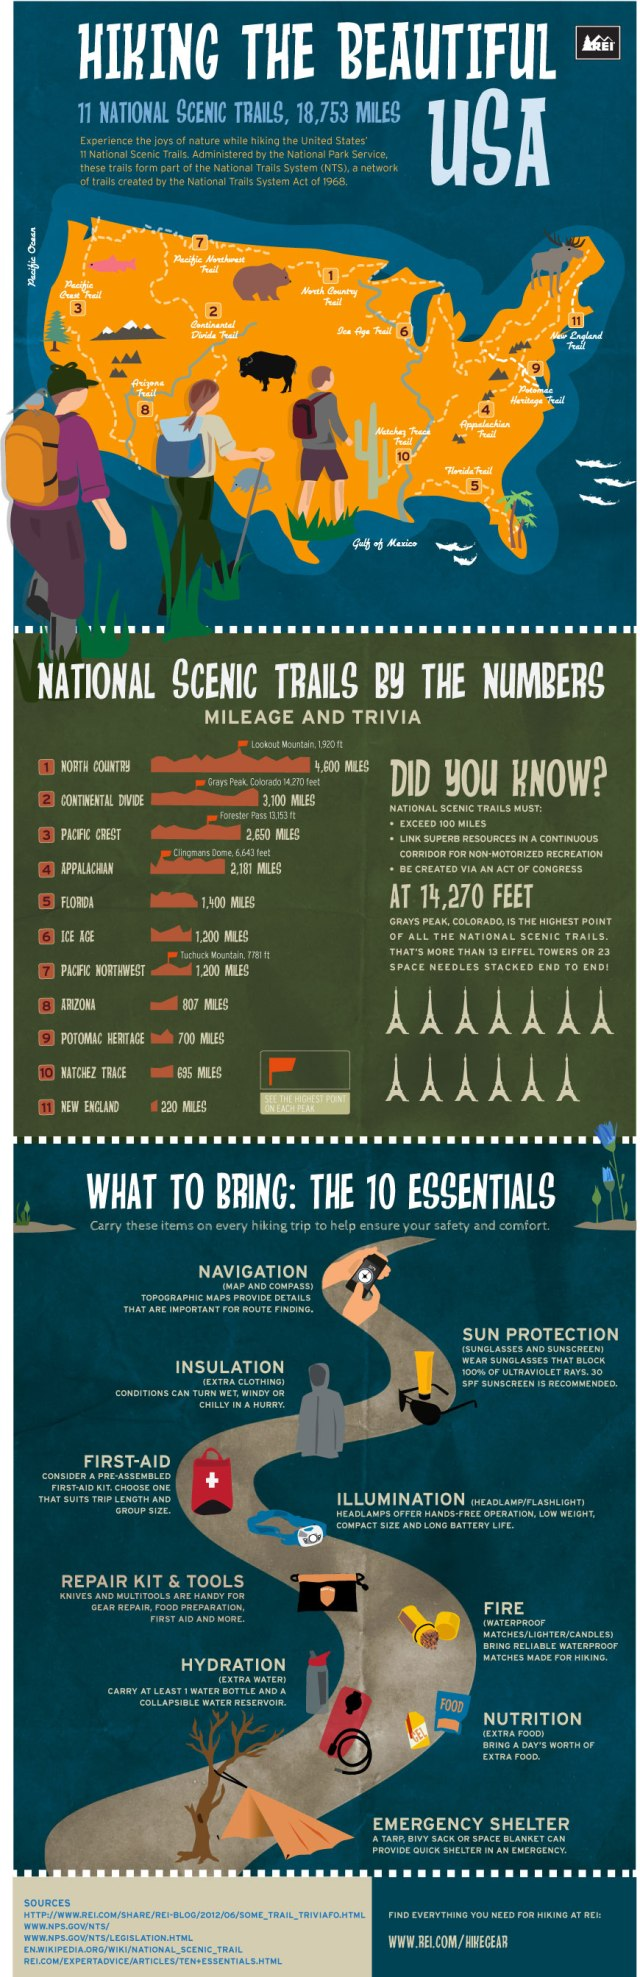 sm3051983-hiking-infographic0807_870